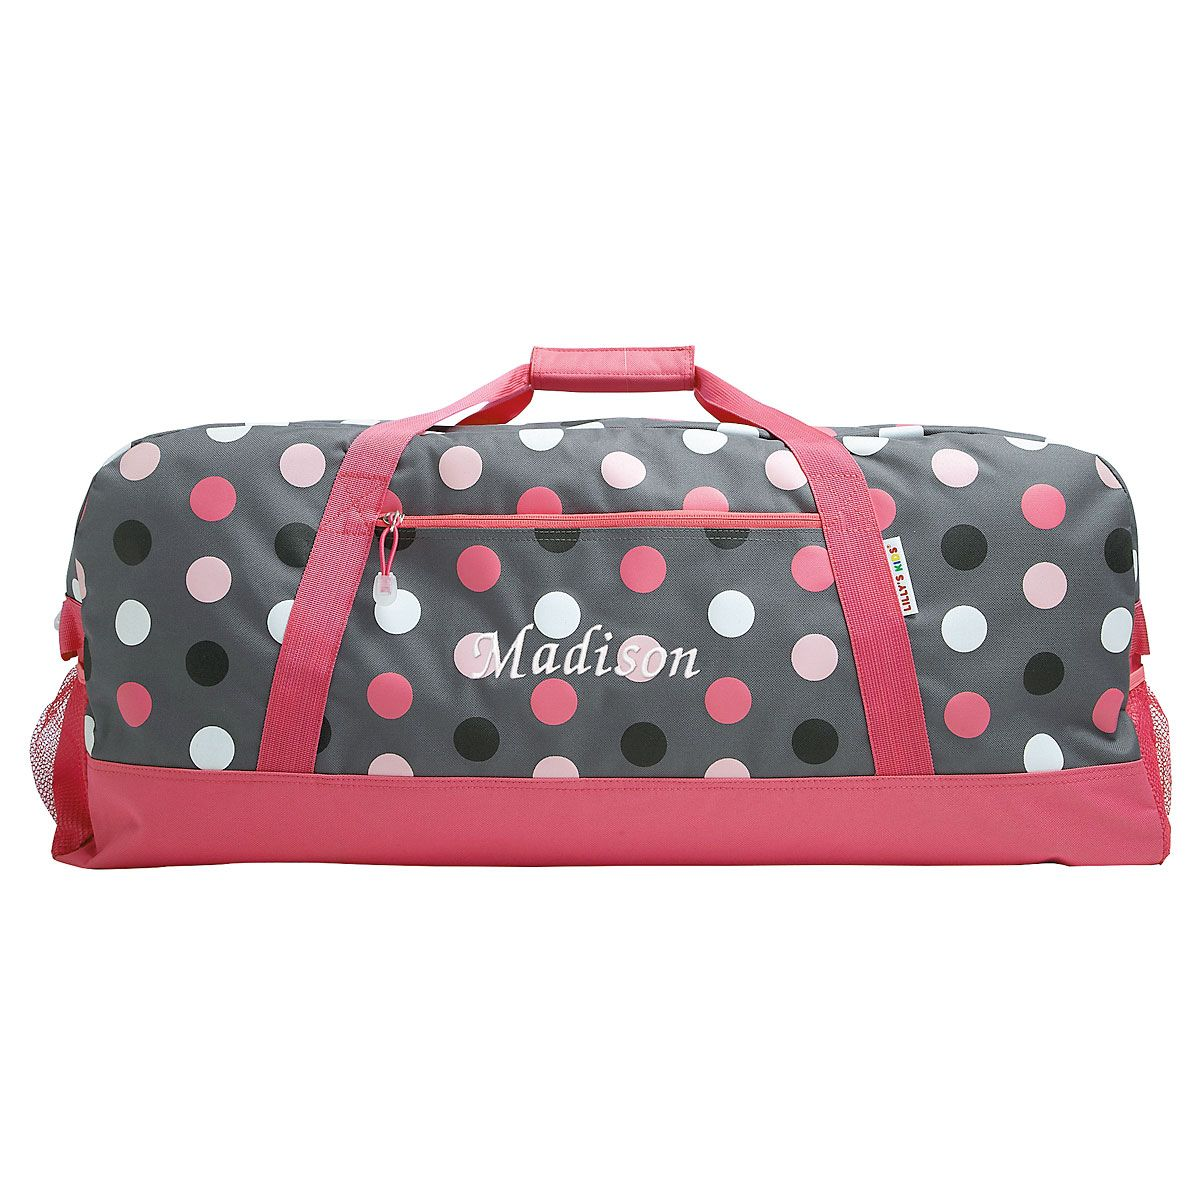 Grey Multi-Dots Personalized Duffel Bag